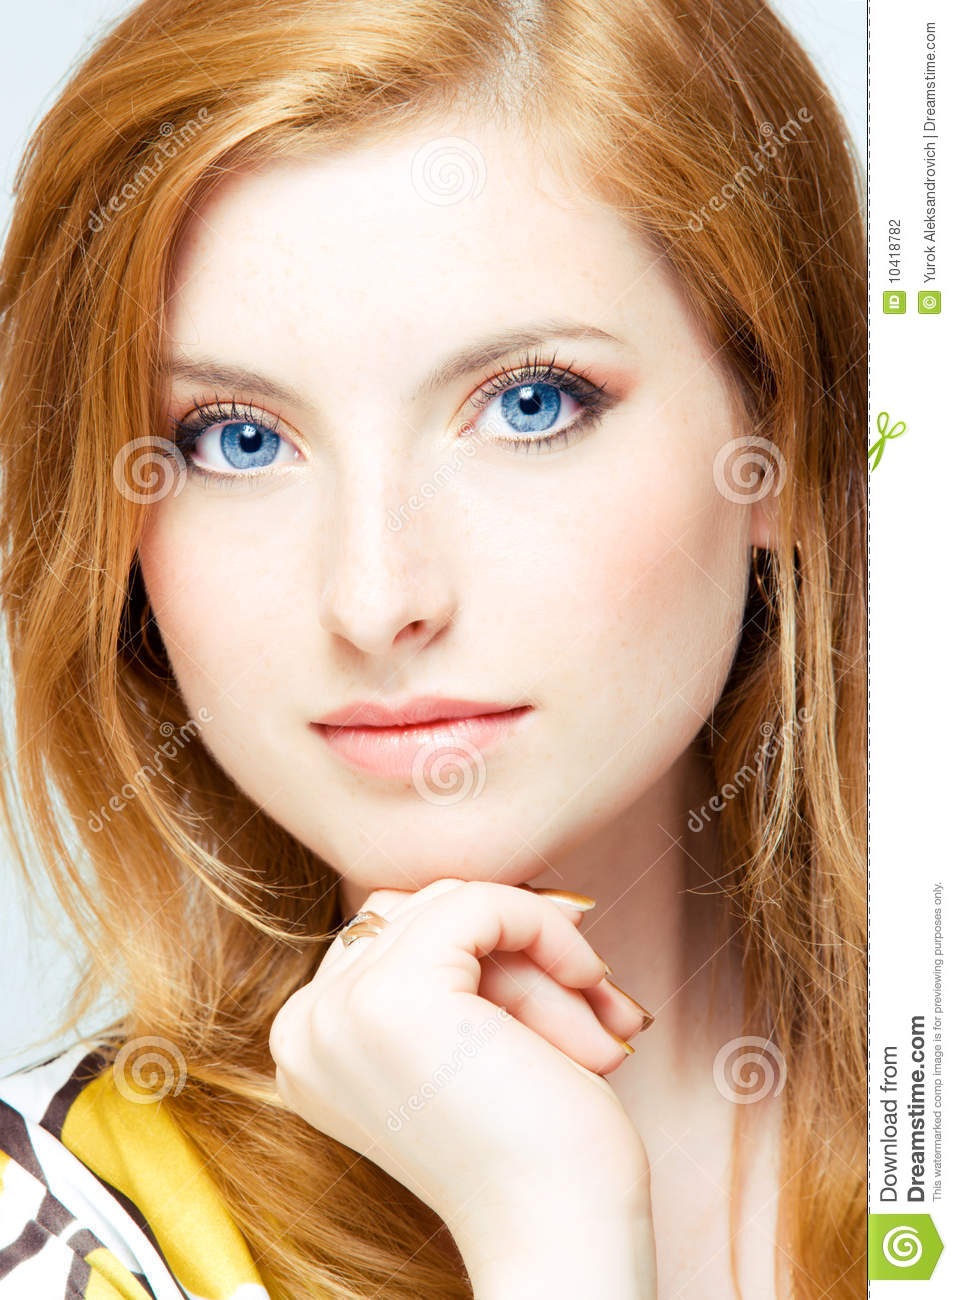 Readhead portrait stock photo image of beauty make 10418782 readhead portrait voltagebd Images